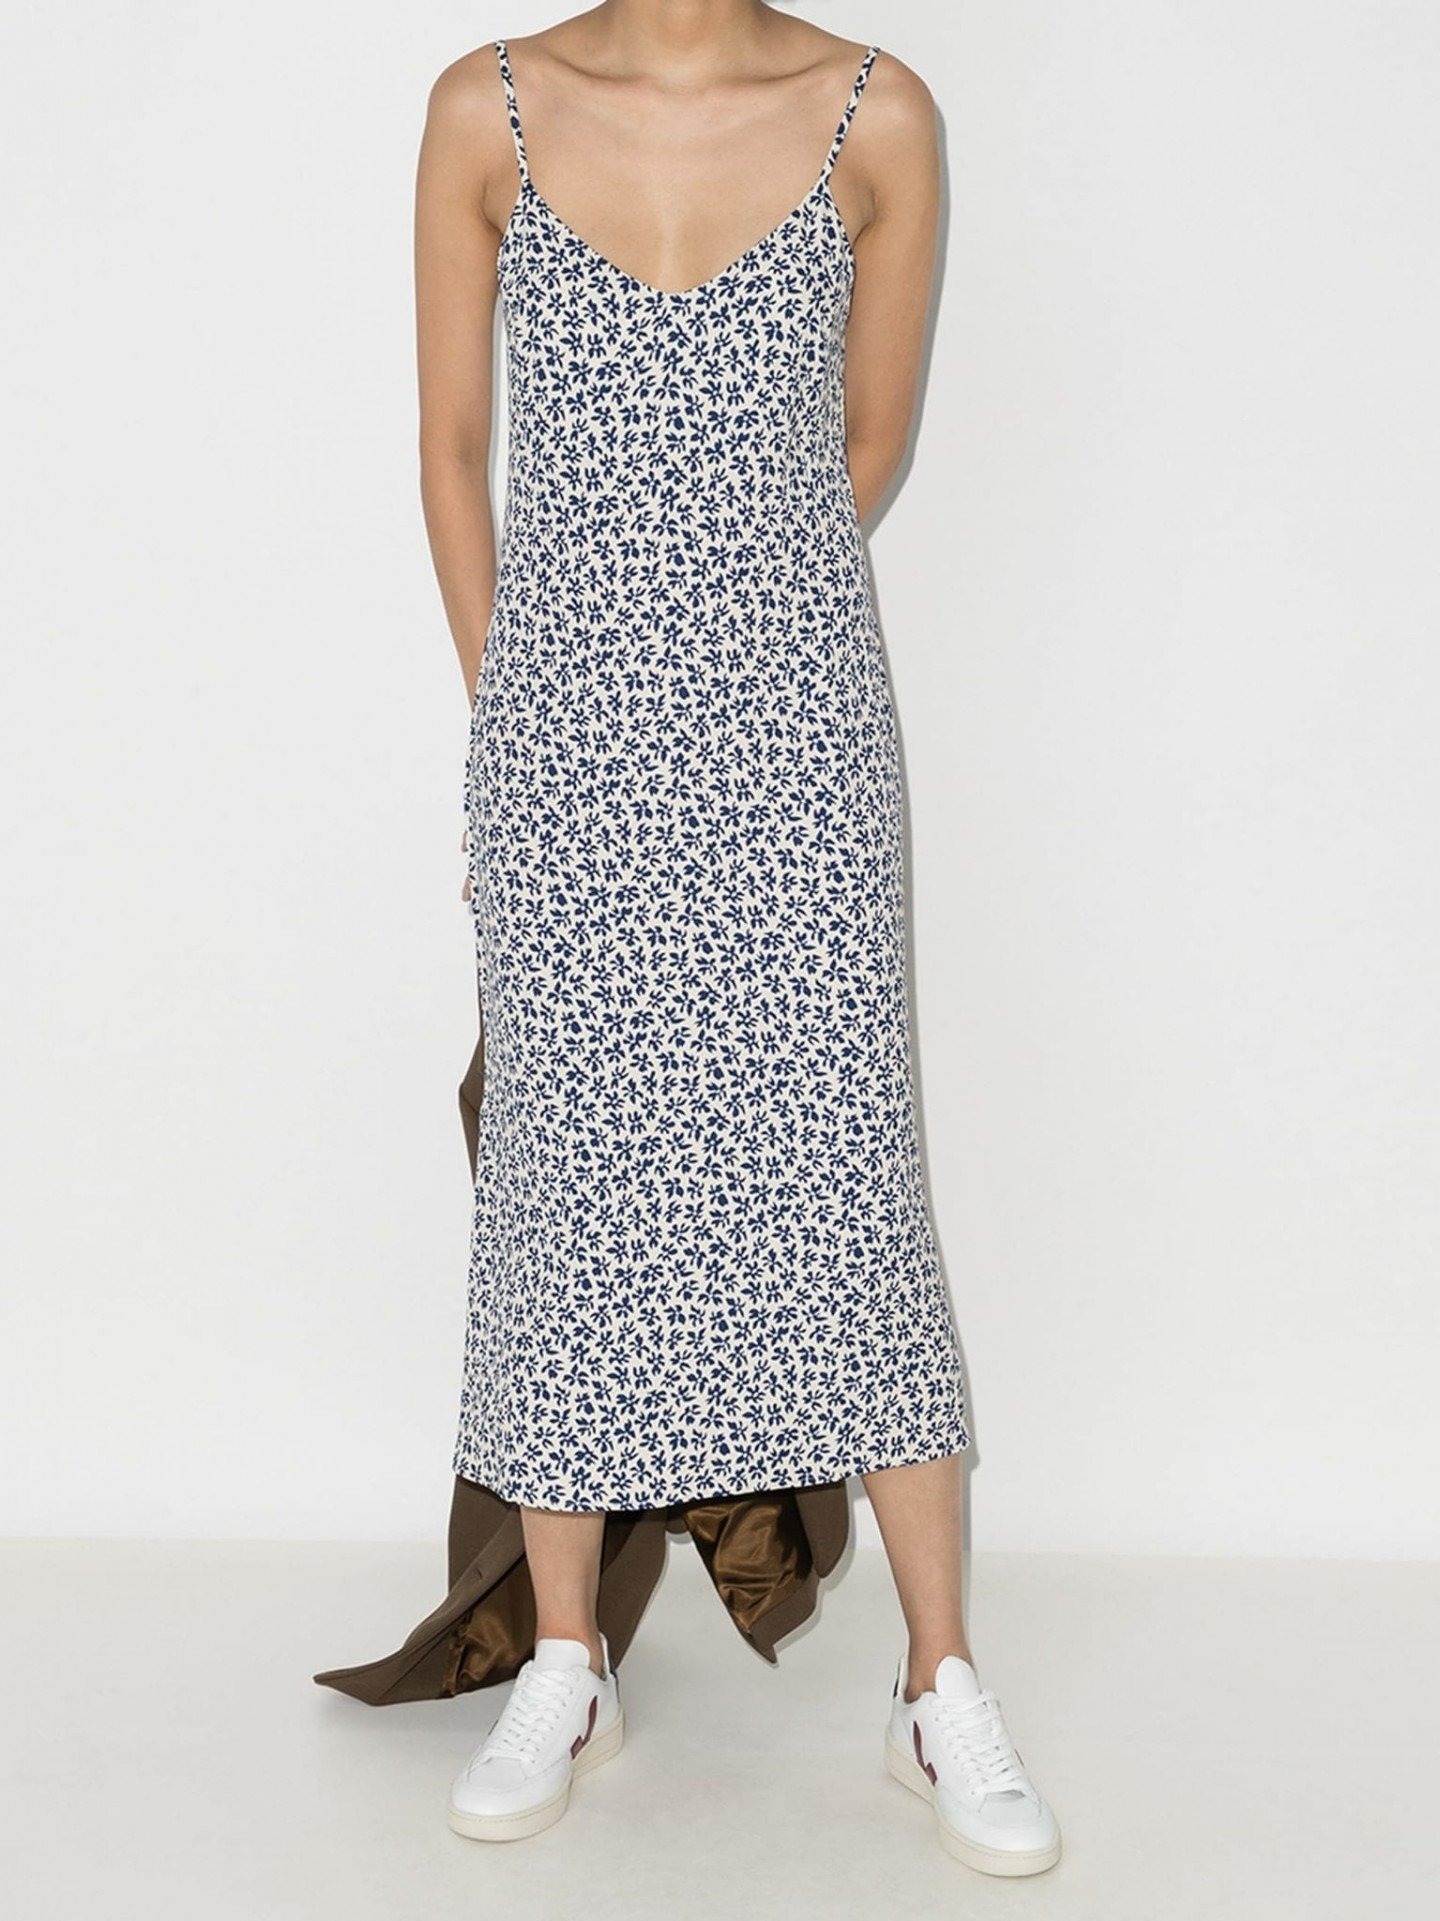 REFORMATION Boston Floral Print Midi Dress